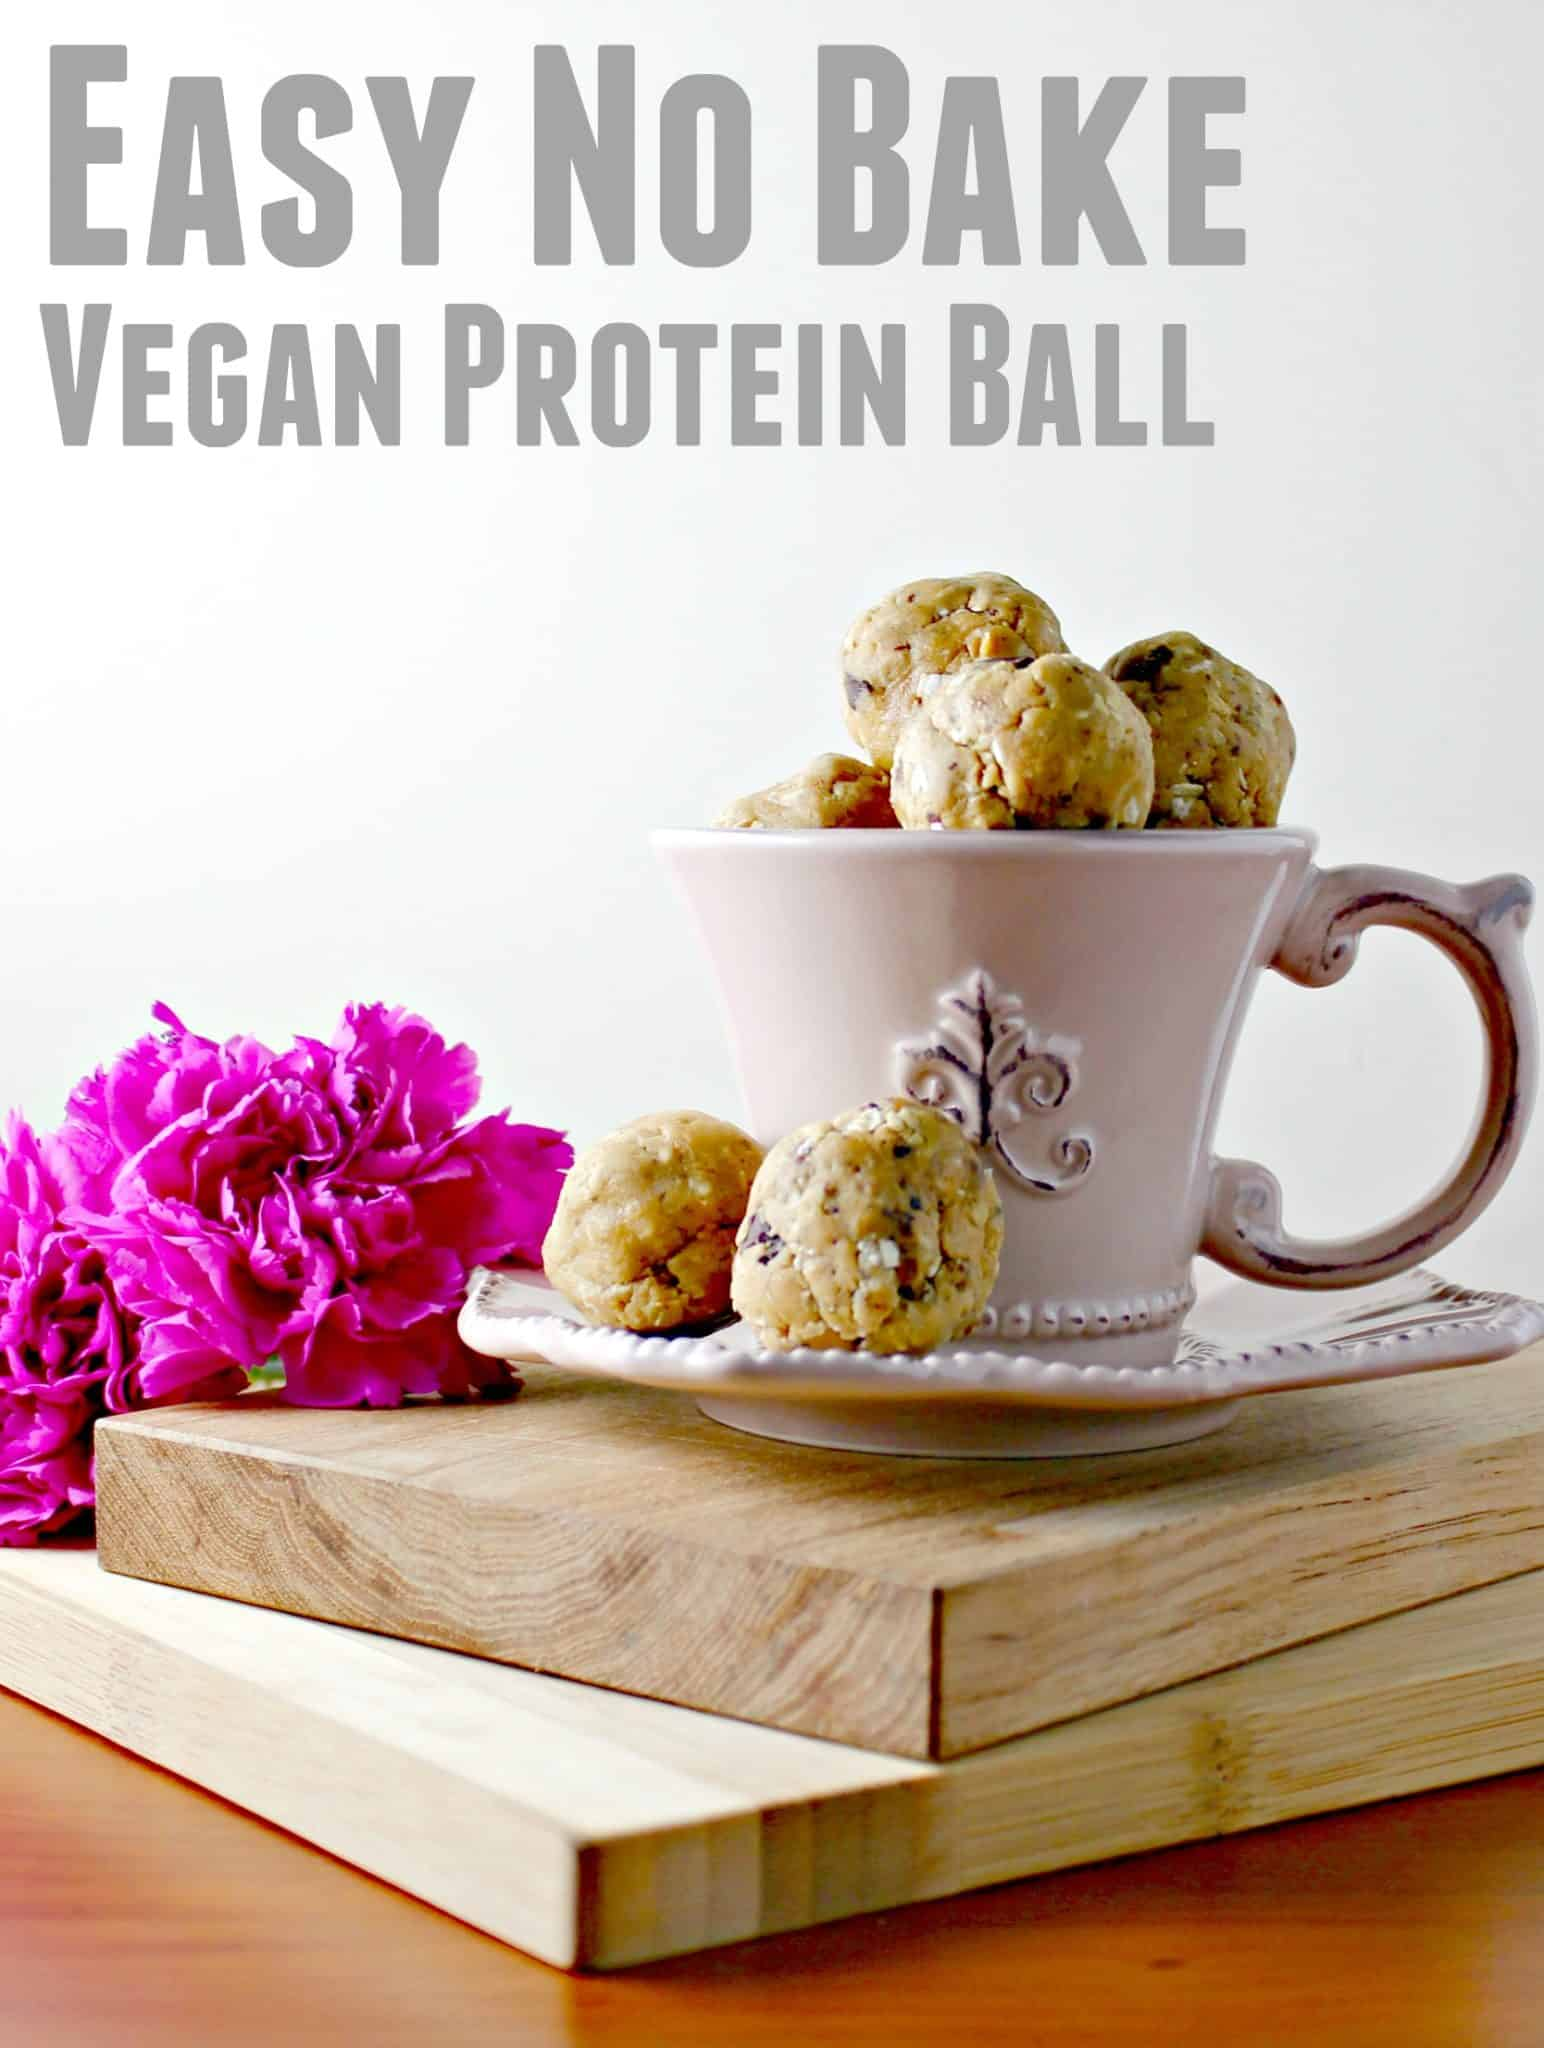 How to Make an Easy No Bake Vegan Protein Ball